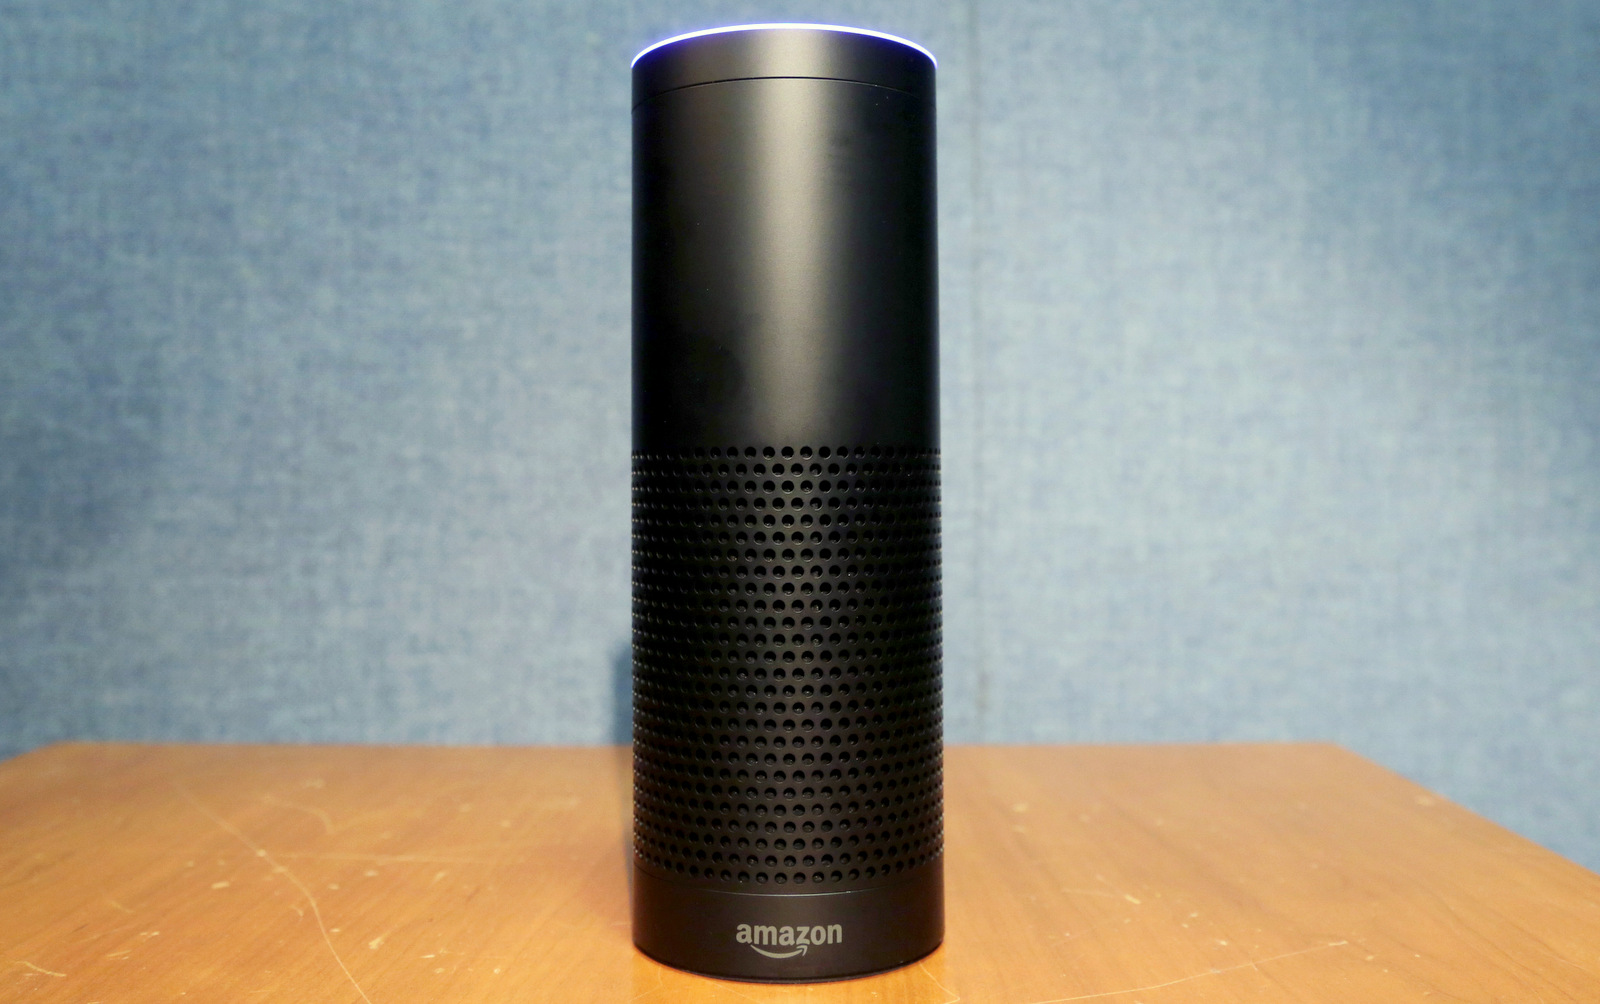 Amazon's Echo speaker, which responds to voice commands. A prosecutor investigating the death of a man whose body was found in a hot tub wants to expand the probe to include a potential new kind of evidence: the suspect's Amazon Echo smart speaker. (AP/Mark Lennihan)